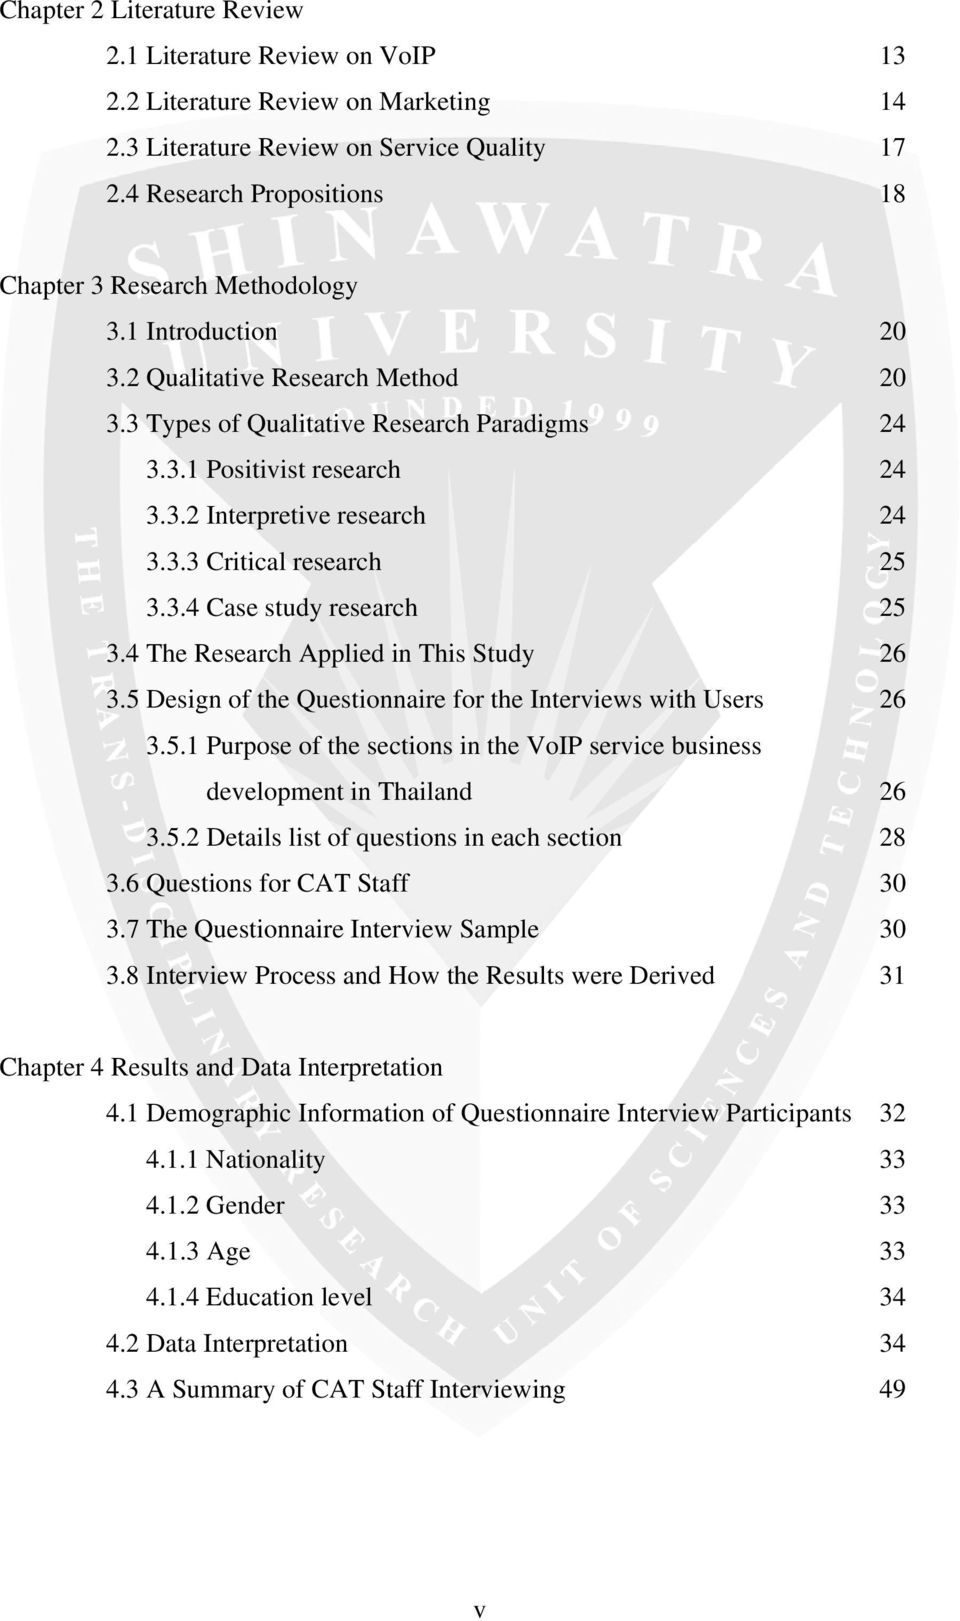 3.3 Critical research 25 3.3.4 Case study research 25 3.4 The Research Applied in This Study 26 3.5 Design of the Questionnaire for the Interviews with Users 26 3.5.1 Purpose of the sections in the VoIP service business development in Thailand 26 3.